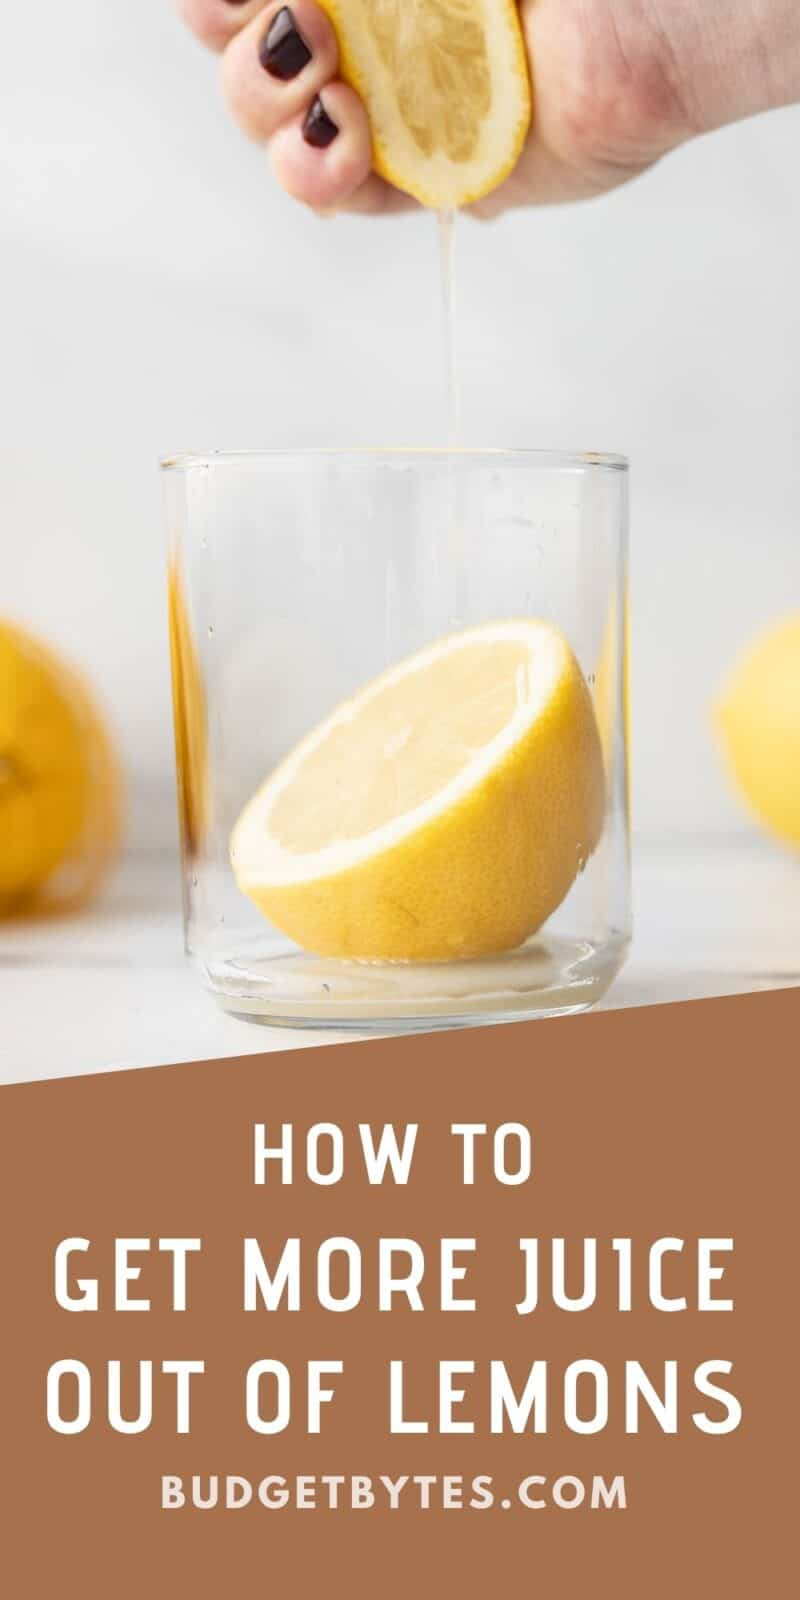 a hand squeezing a lemon into a glass, title text at the bottom